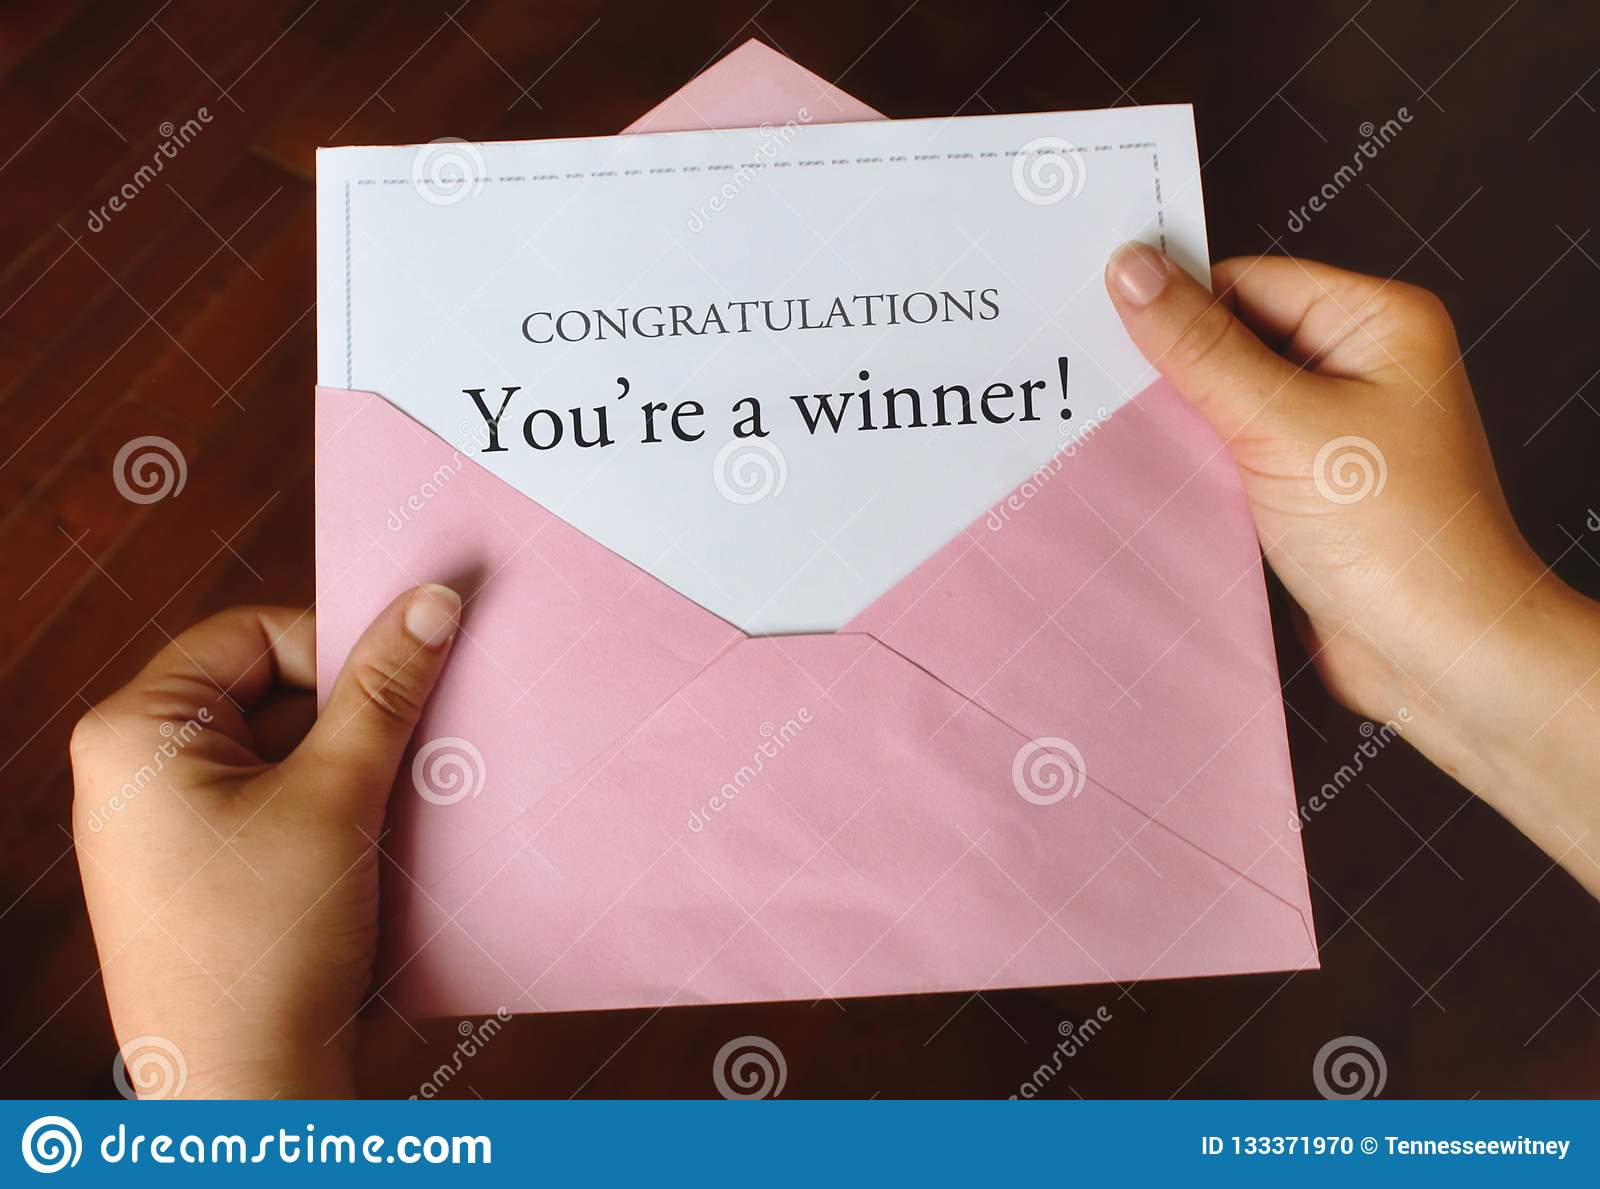 A letter that says Congratulations You`re a winner! with hands holding a pink envelope